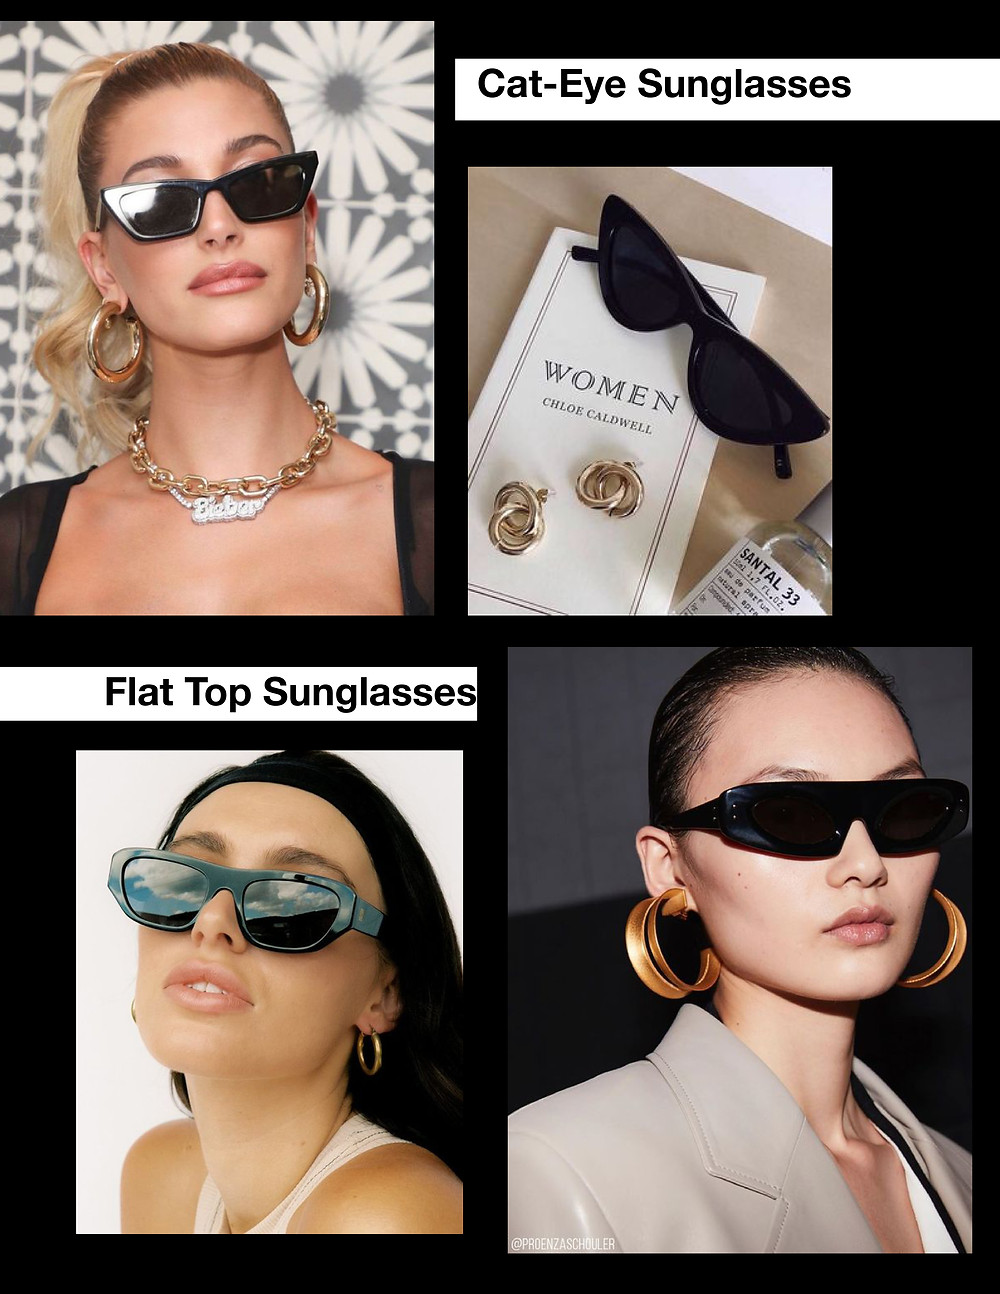 Cat-Eye sunglasses shades, Flat- Top, Flat Brow, stylist selection, shopping guide, fashion trends, summer 2021